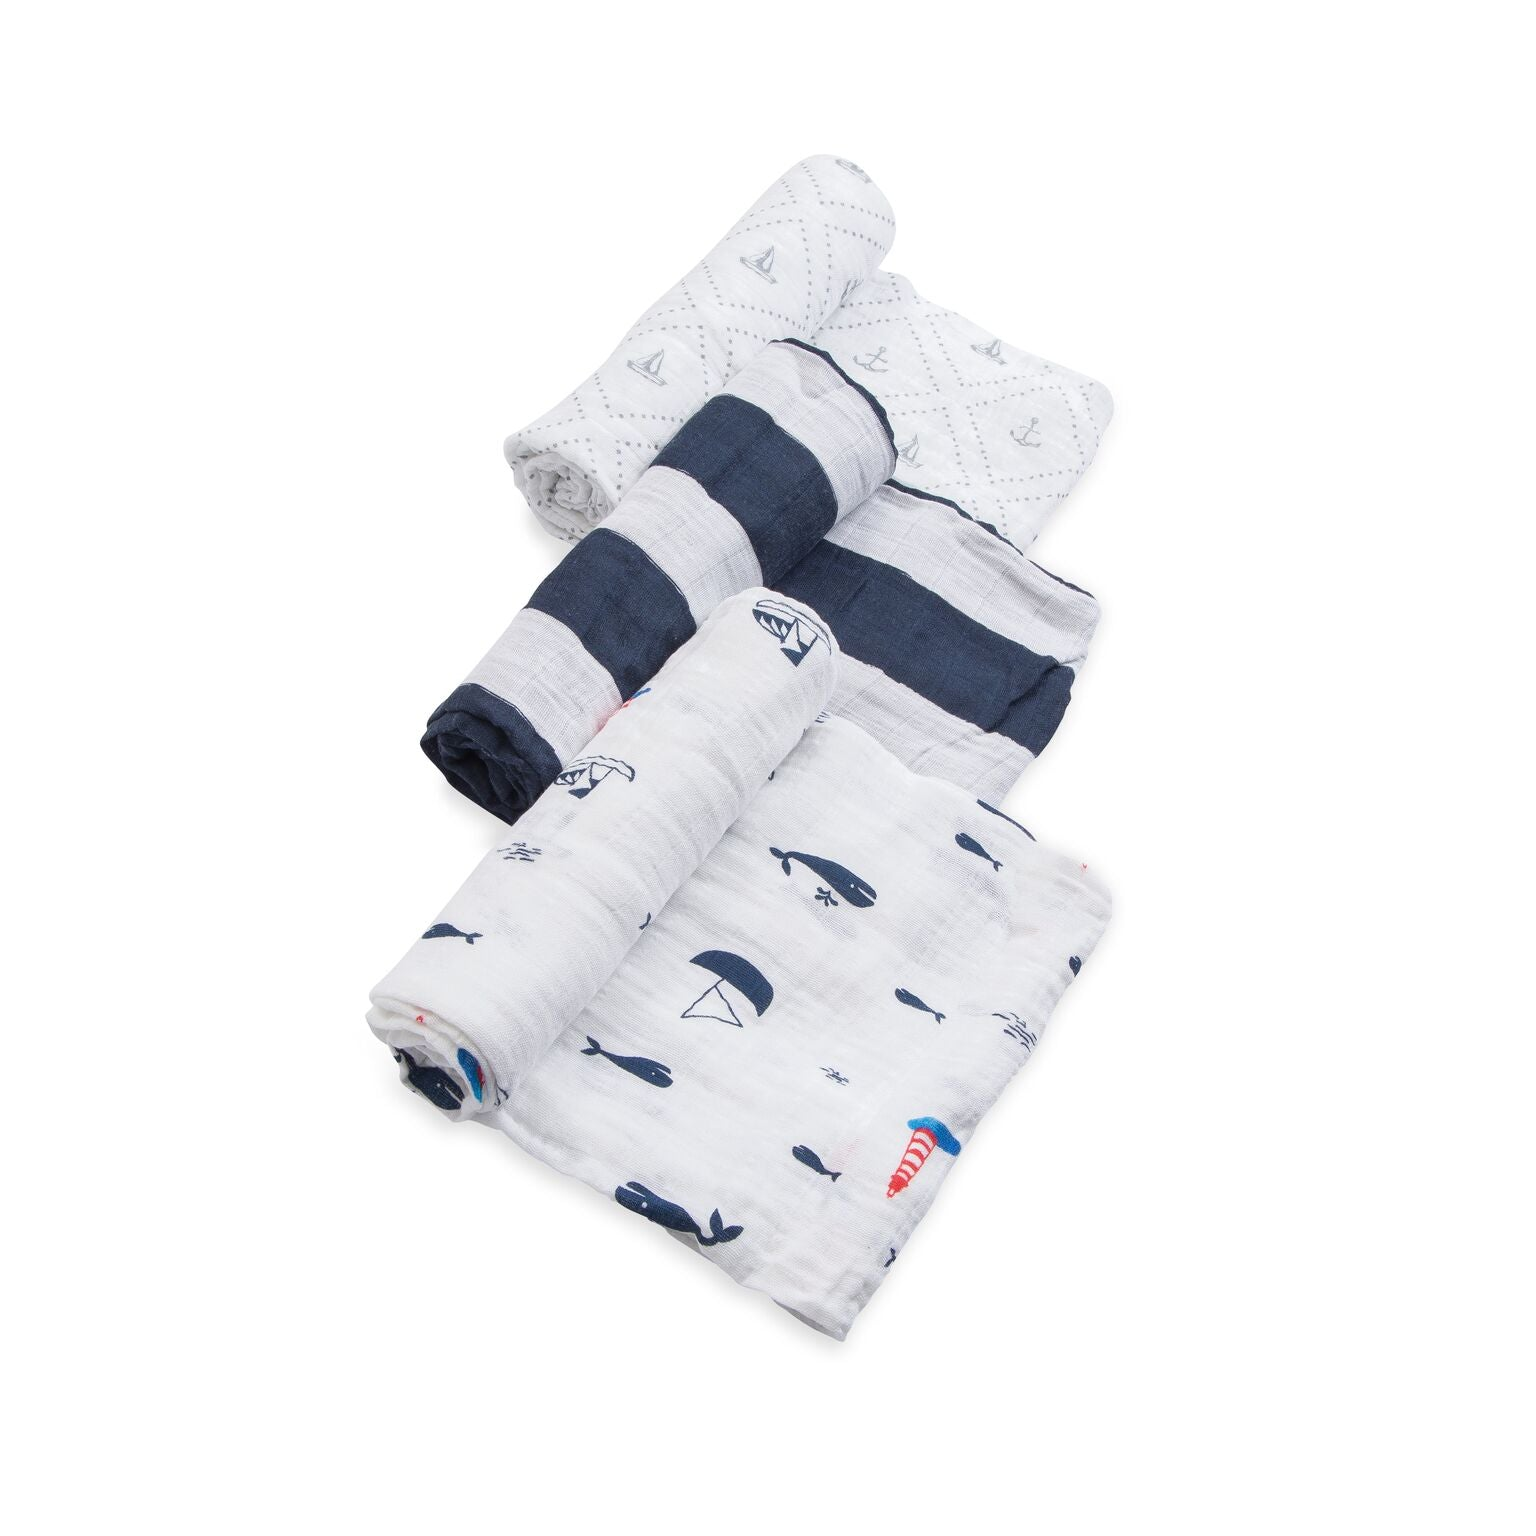 Little Unicorn Cotton Muslin Swaddle 3er Set - Anchors Aweigh